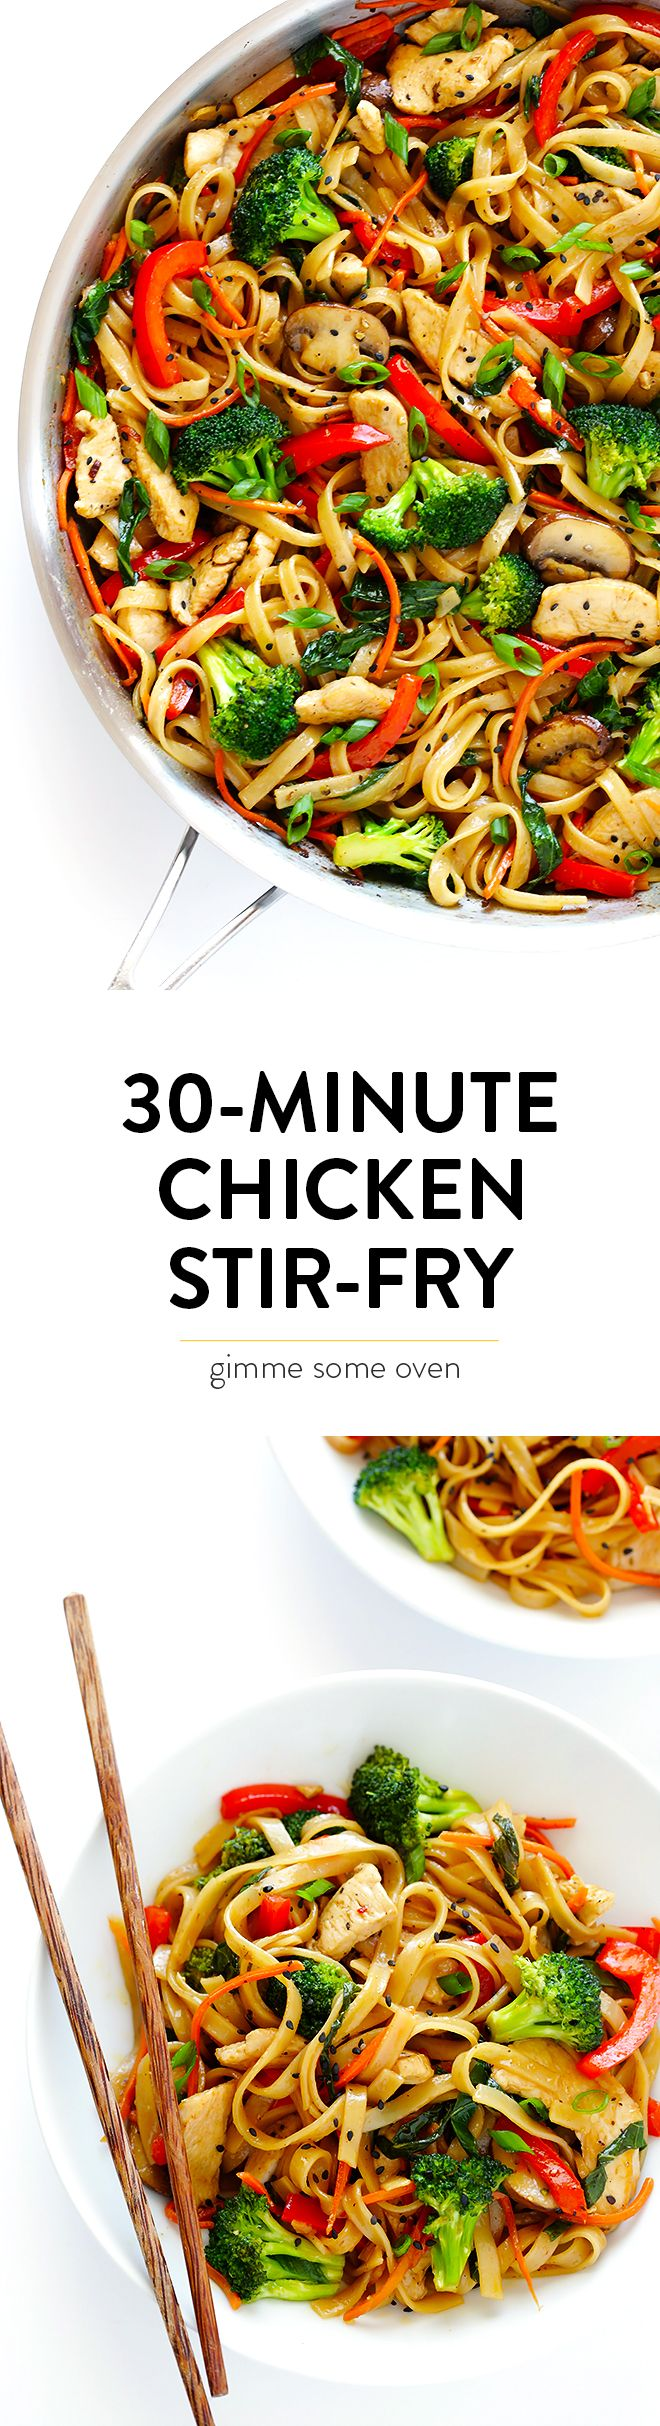 This 30-Minute Sesame Chicken Noodle Stir-Fry recipe is quick and easy to make, easy to customize with whatever fresh veggies or greens you have on hand, and it's tossed with the most delicious sesame-soy vinaigrette! | http://gimmesomeoven.com